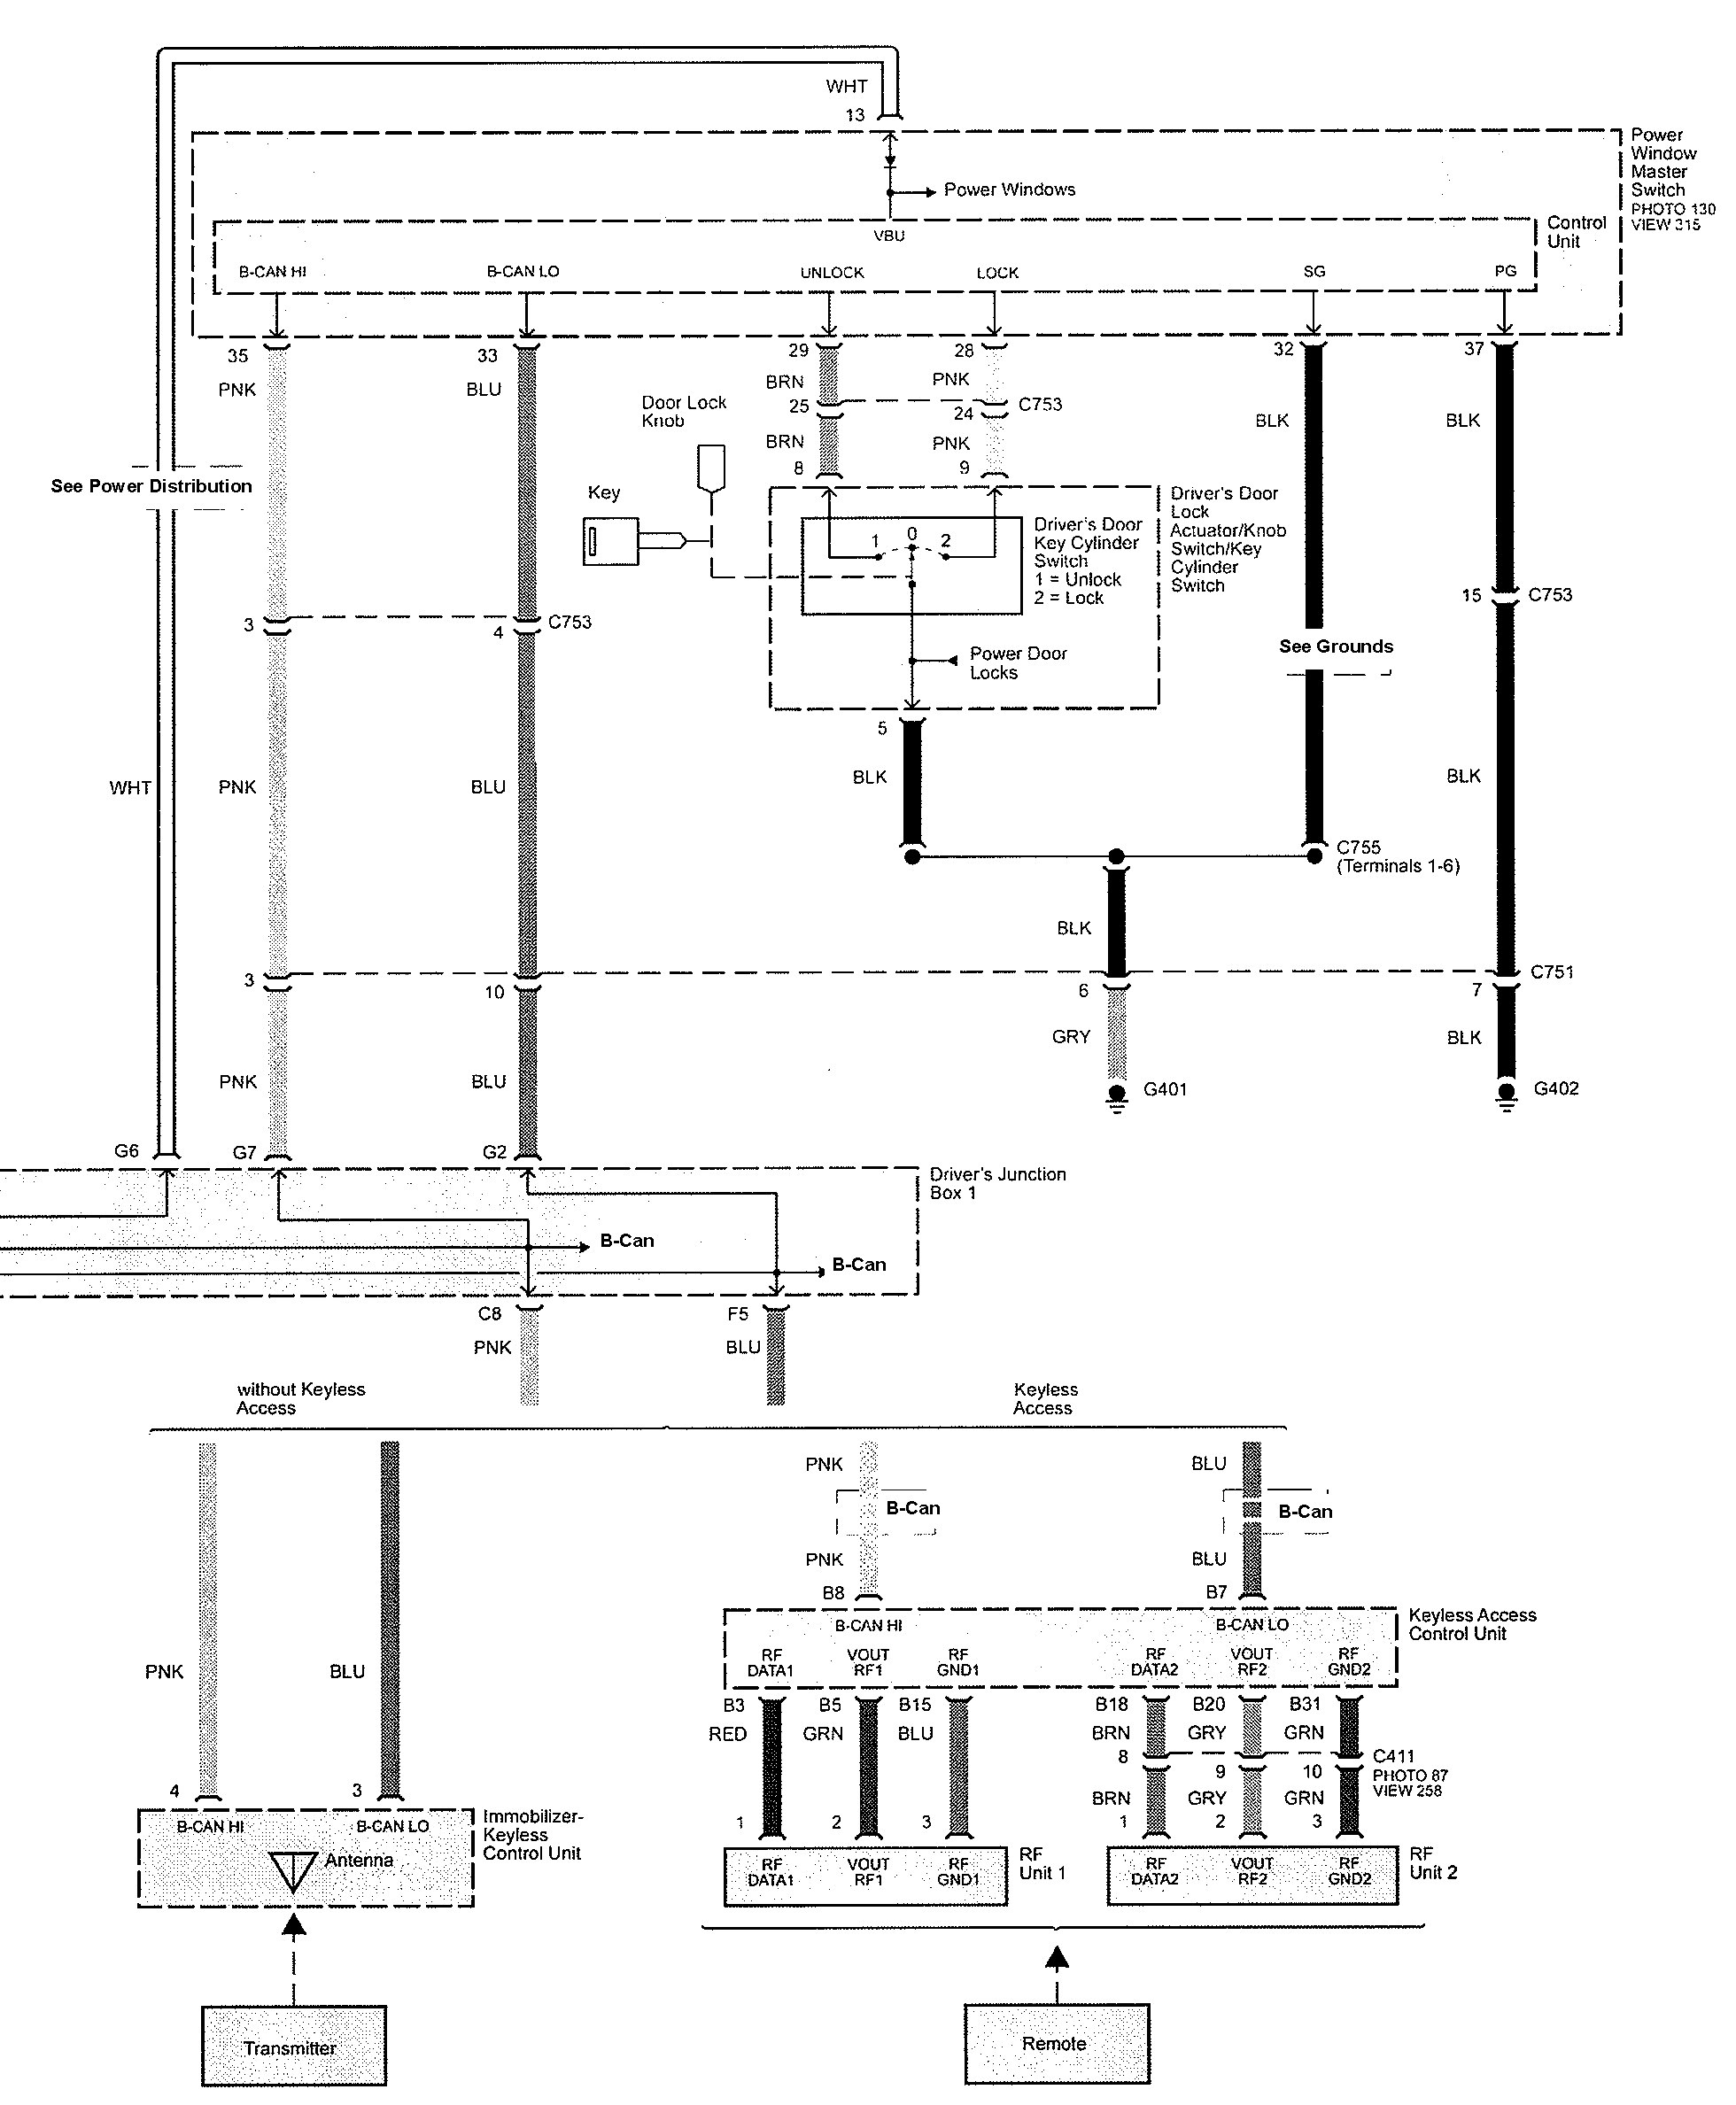 2010 Acura Tl Light Wire Diagram Smart Wiring Diagrams Lights Images Gallery